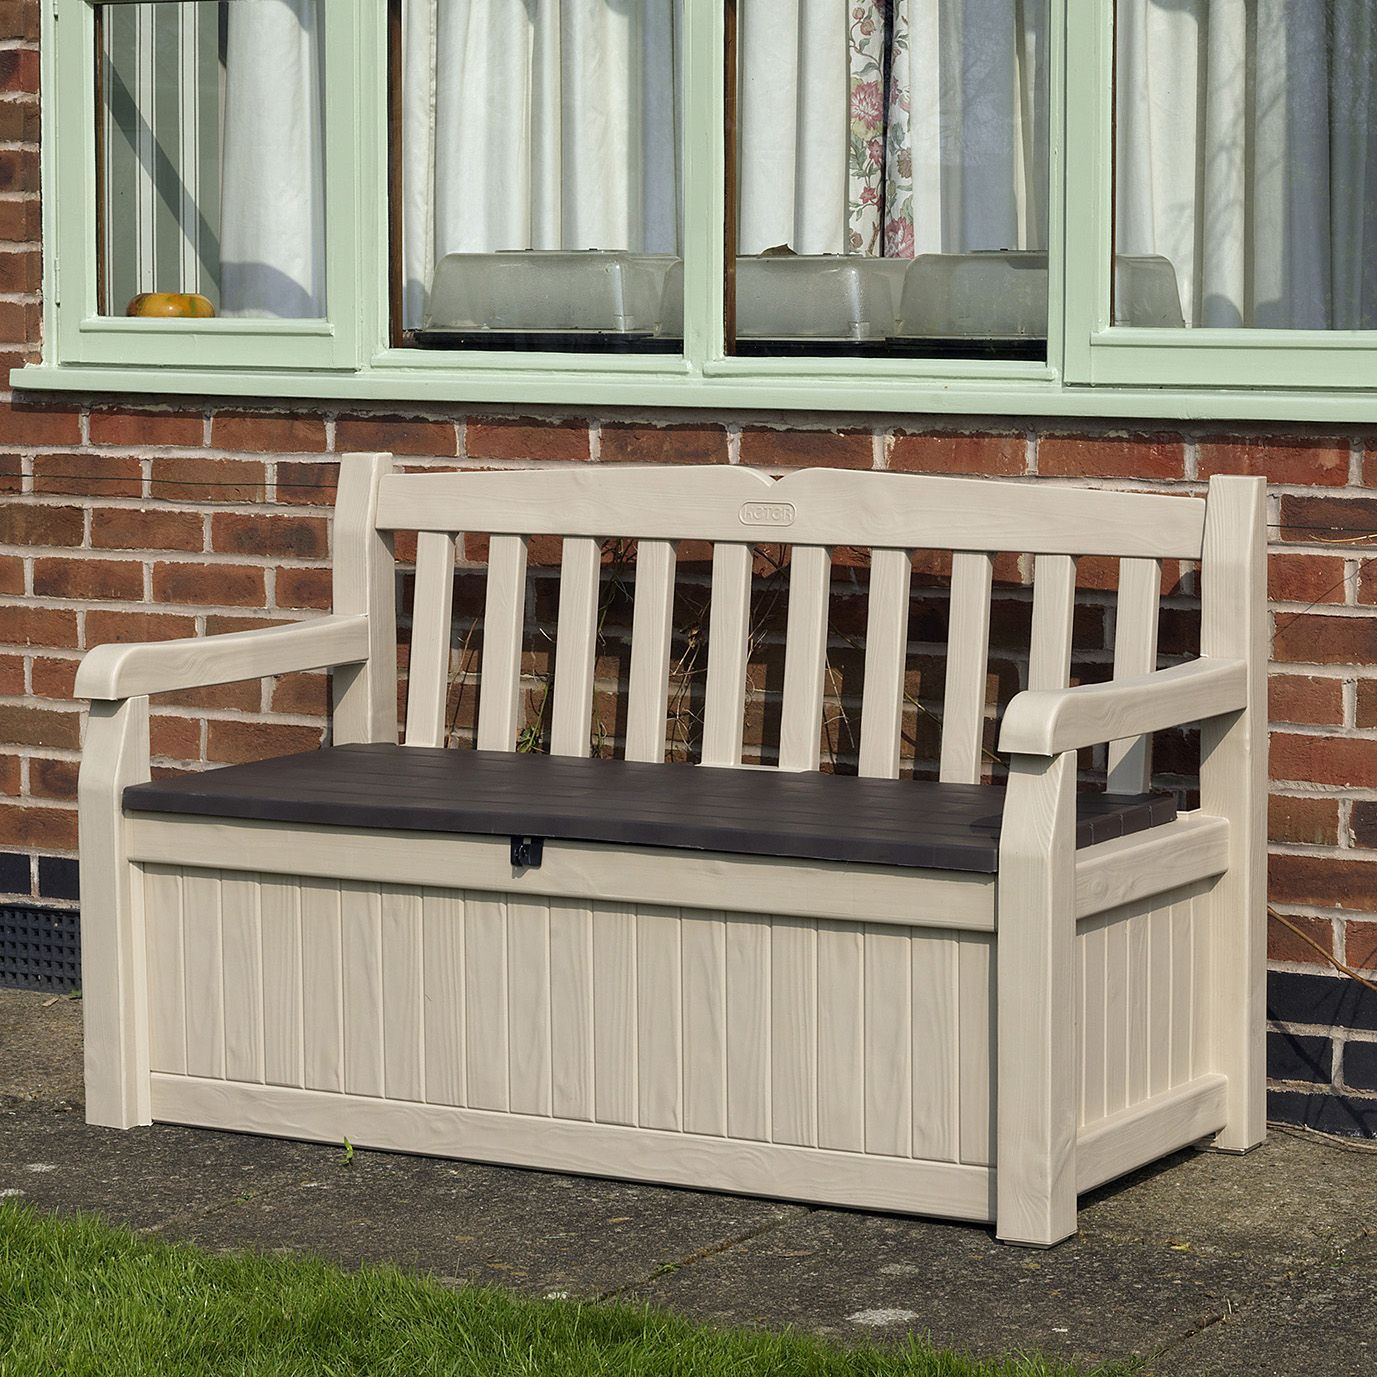 Picture of: Wooden Bench with Storage Color